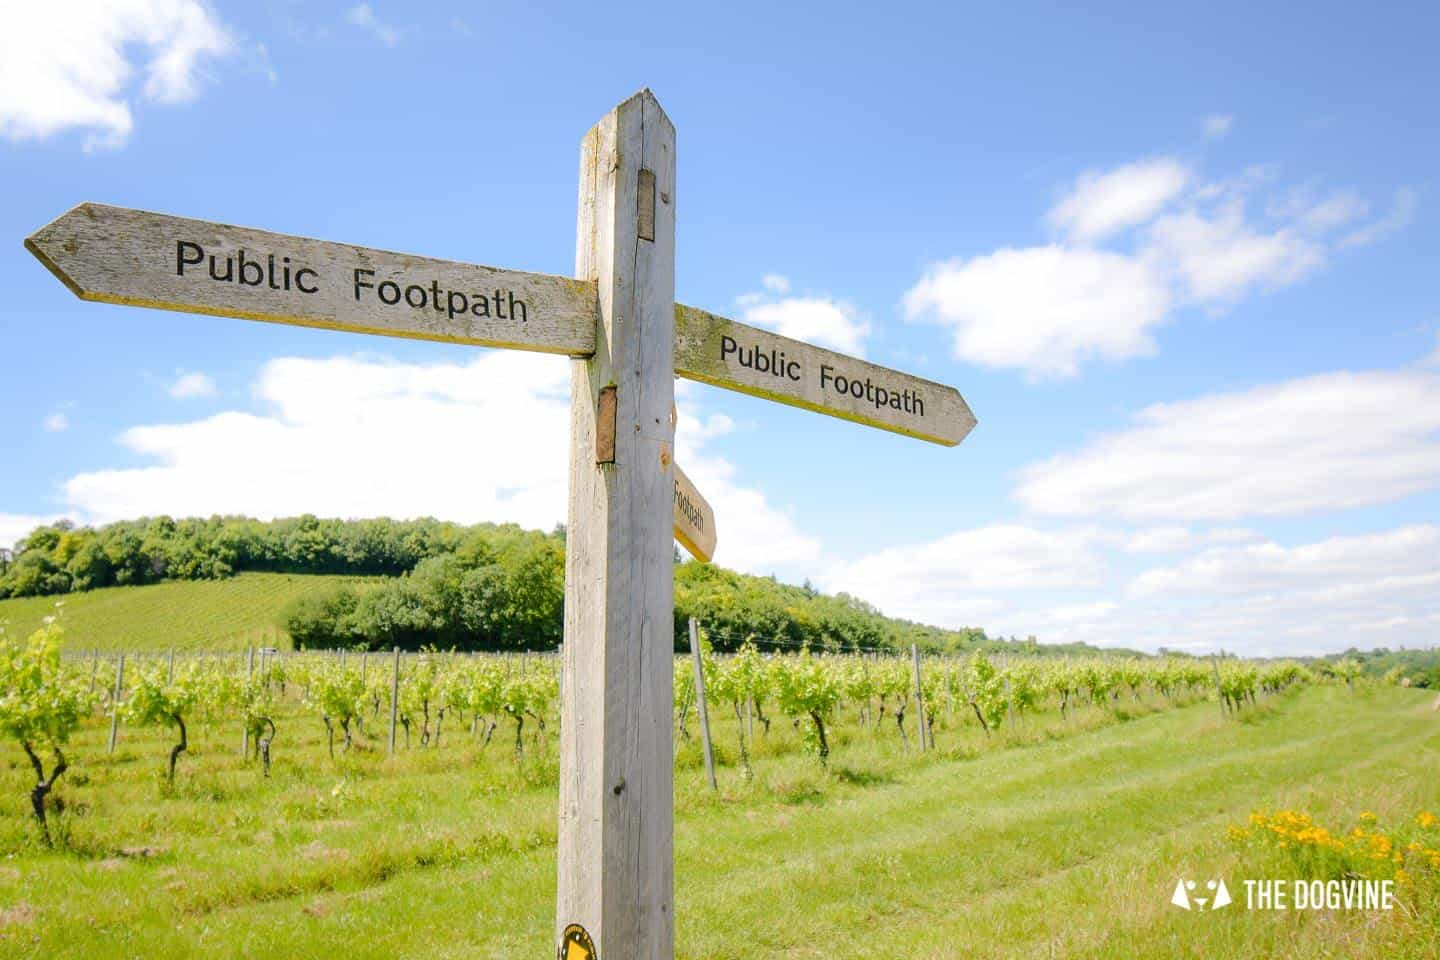 Denbies Dog-friendly Vineyard | A Delightful Day Out 6